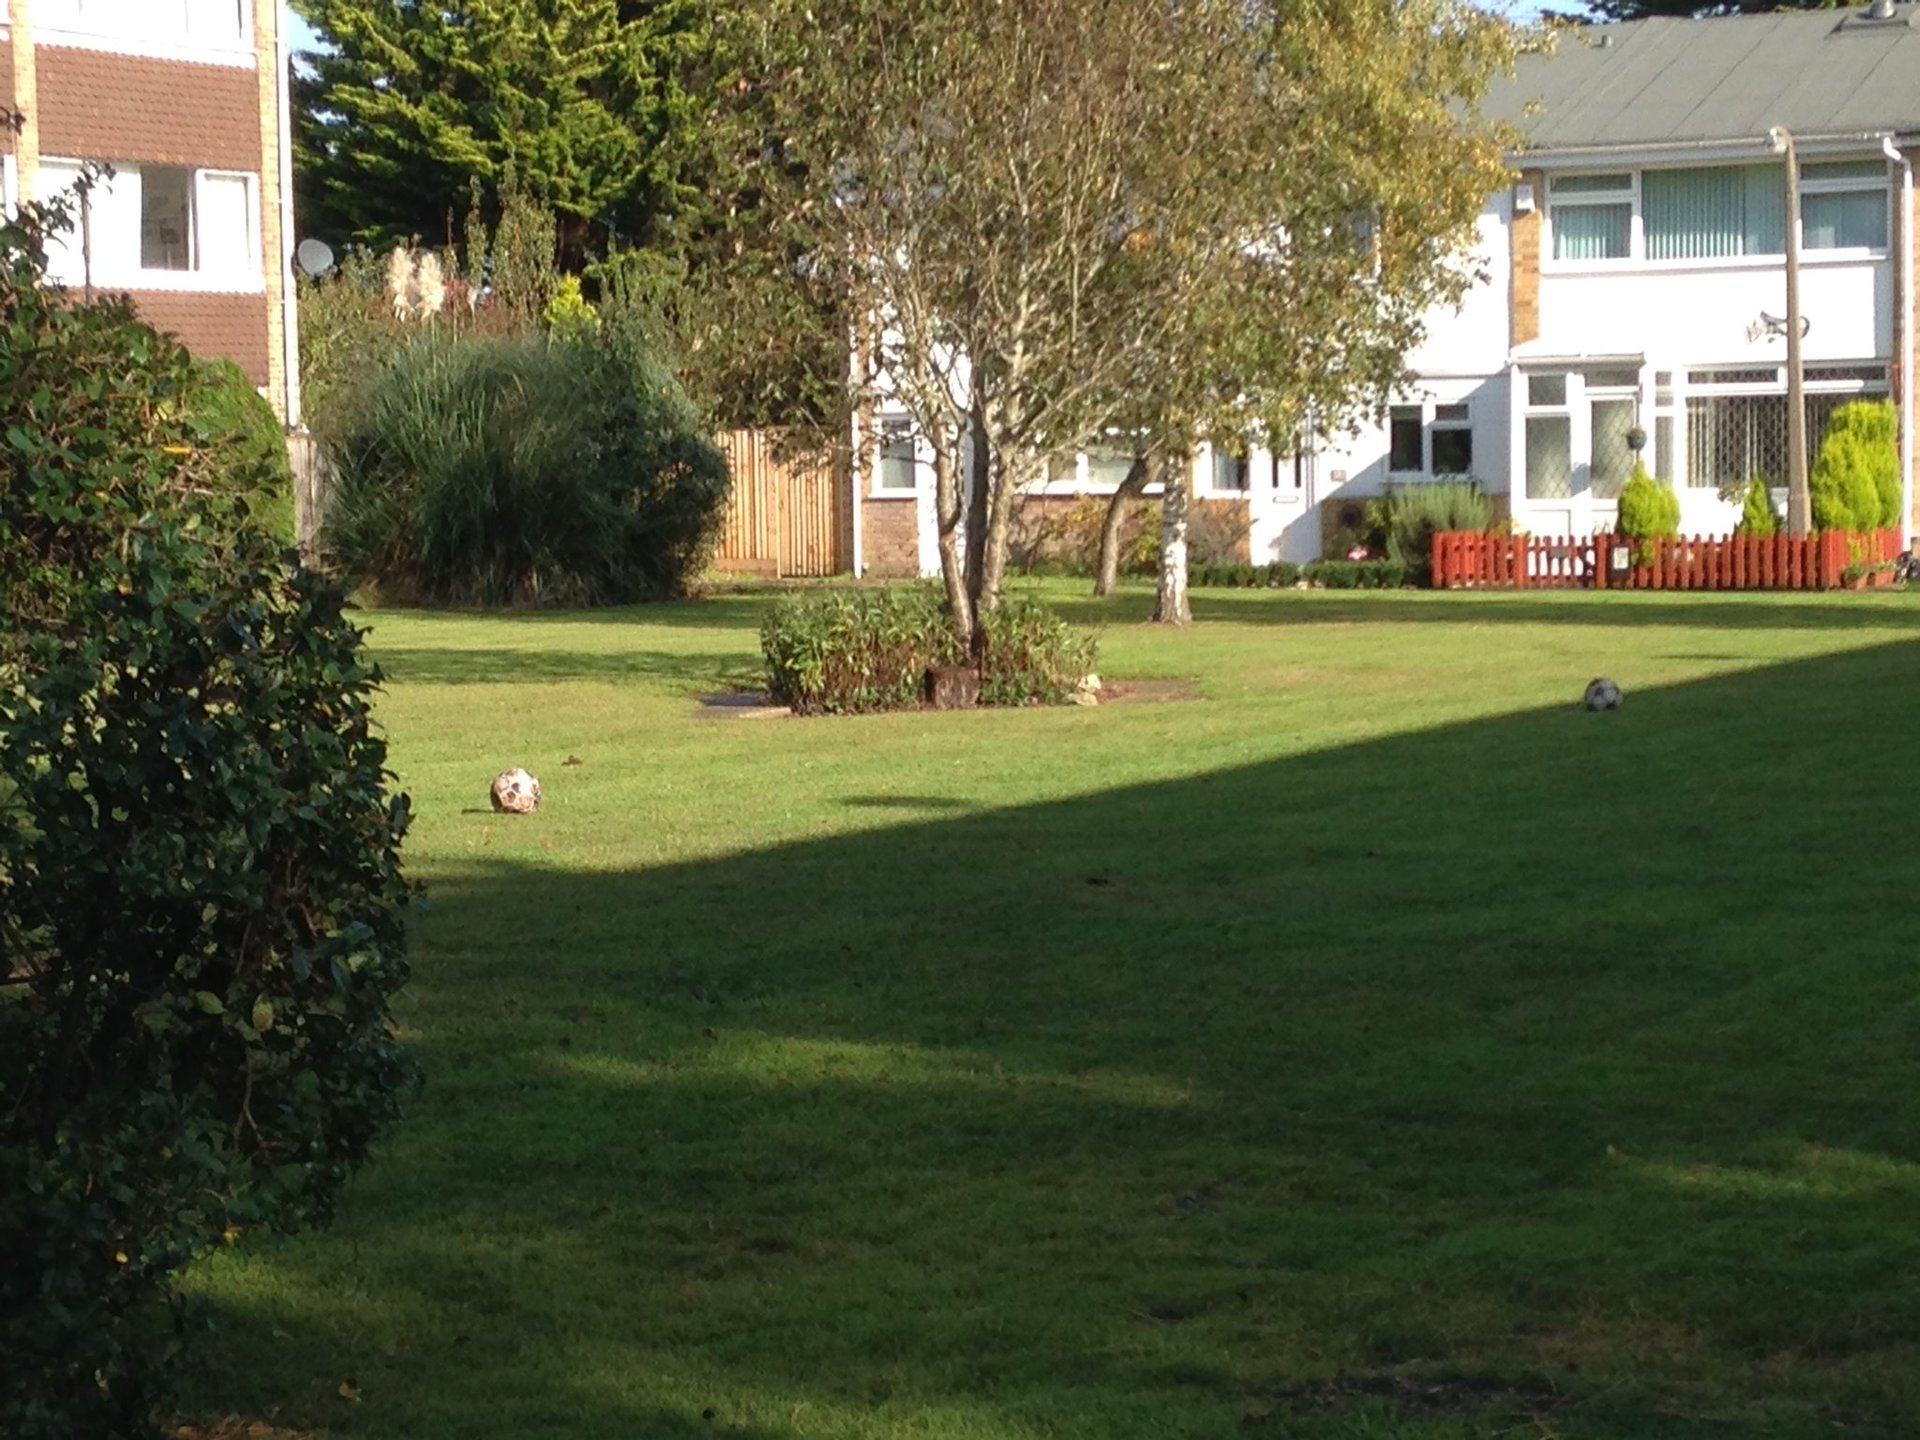 Flats with lawns and hedges